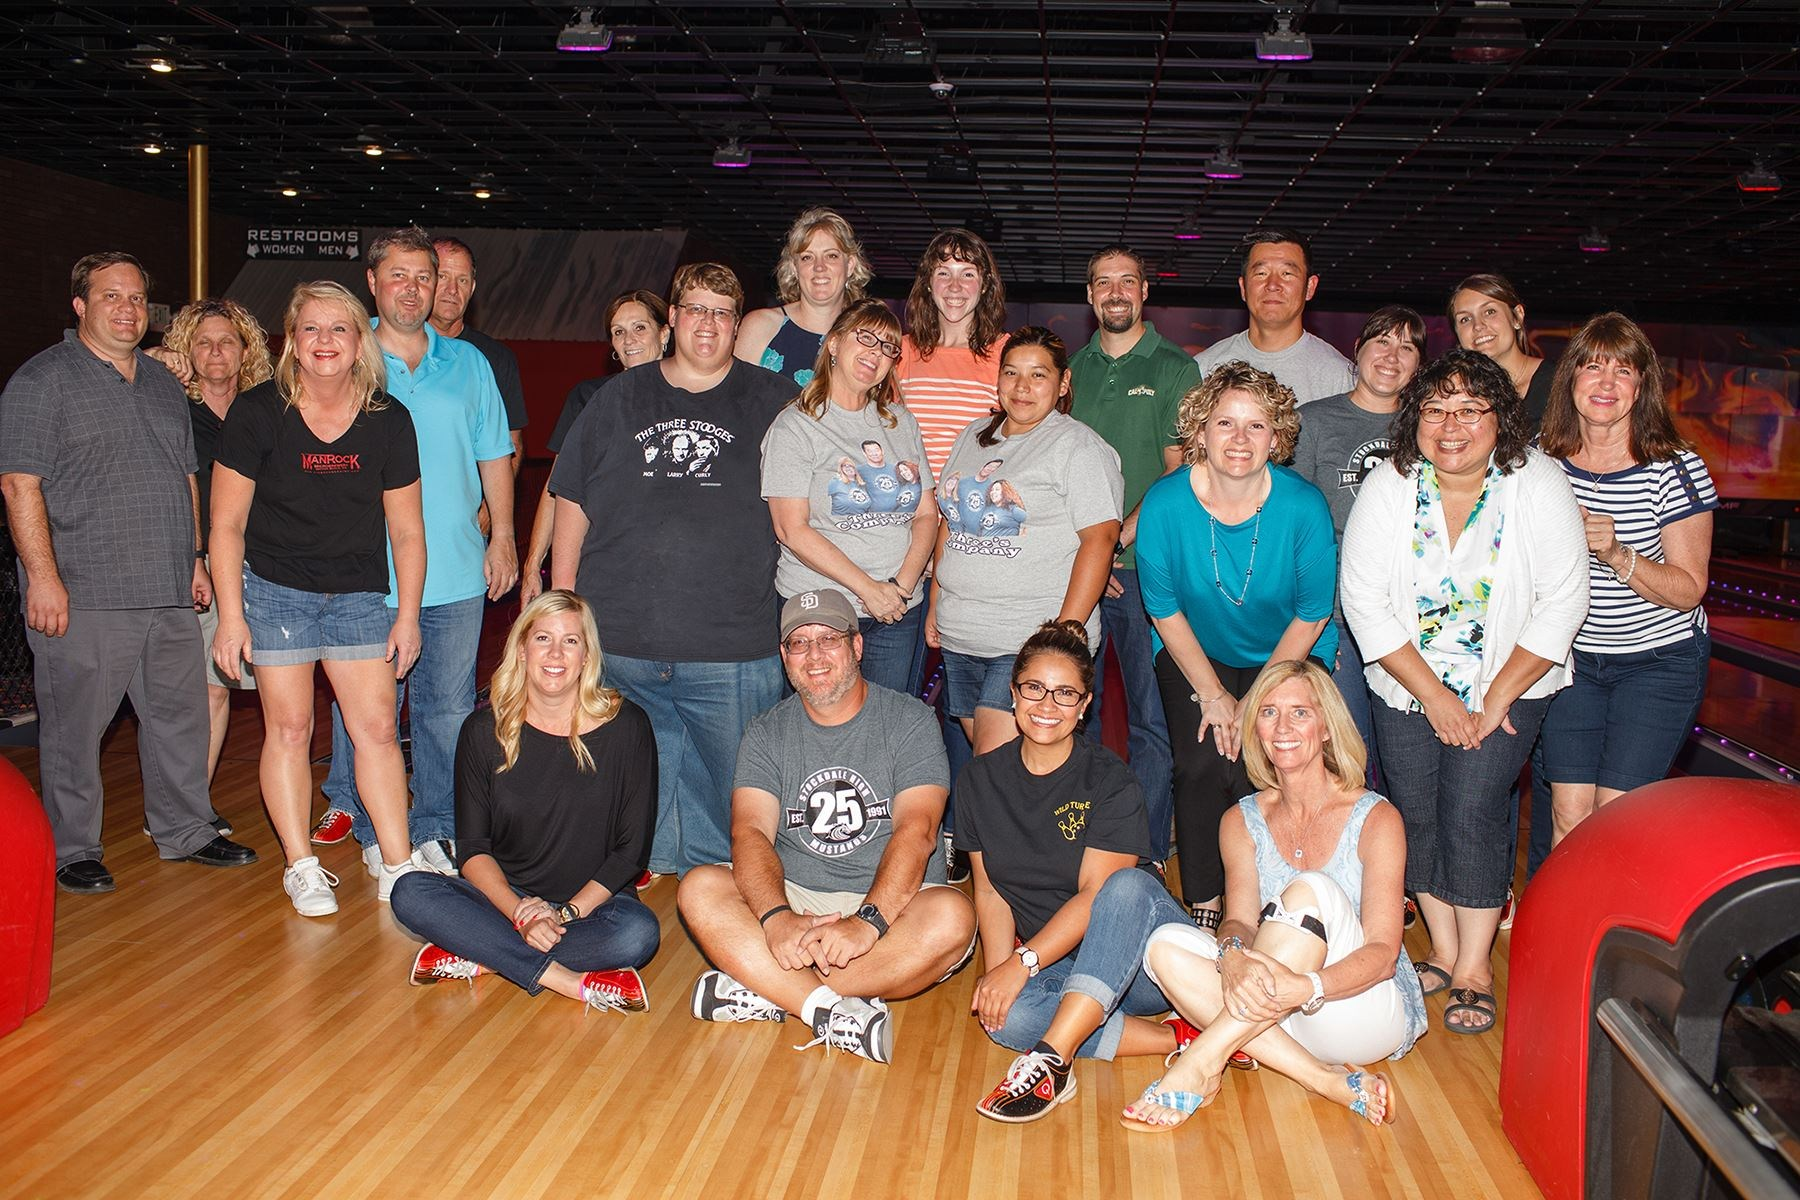 Out bowling with the staff